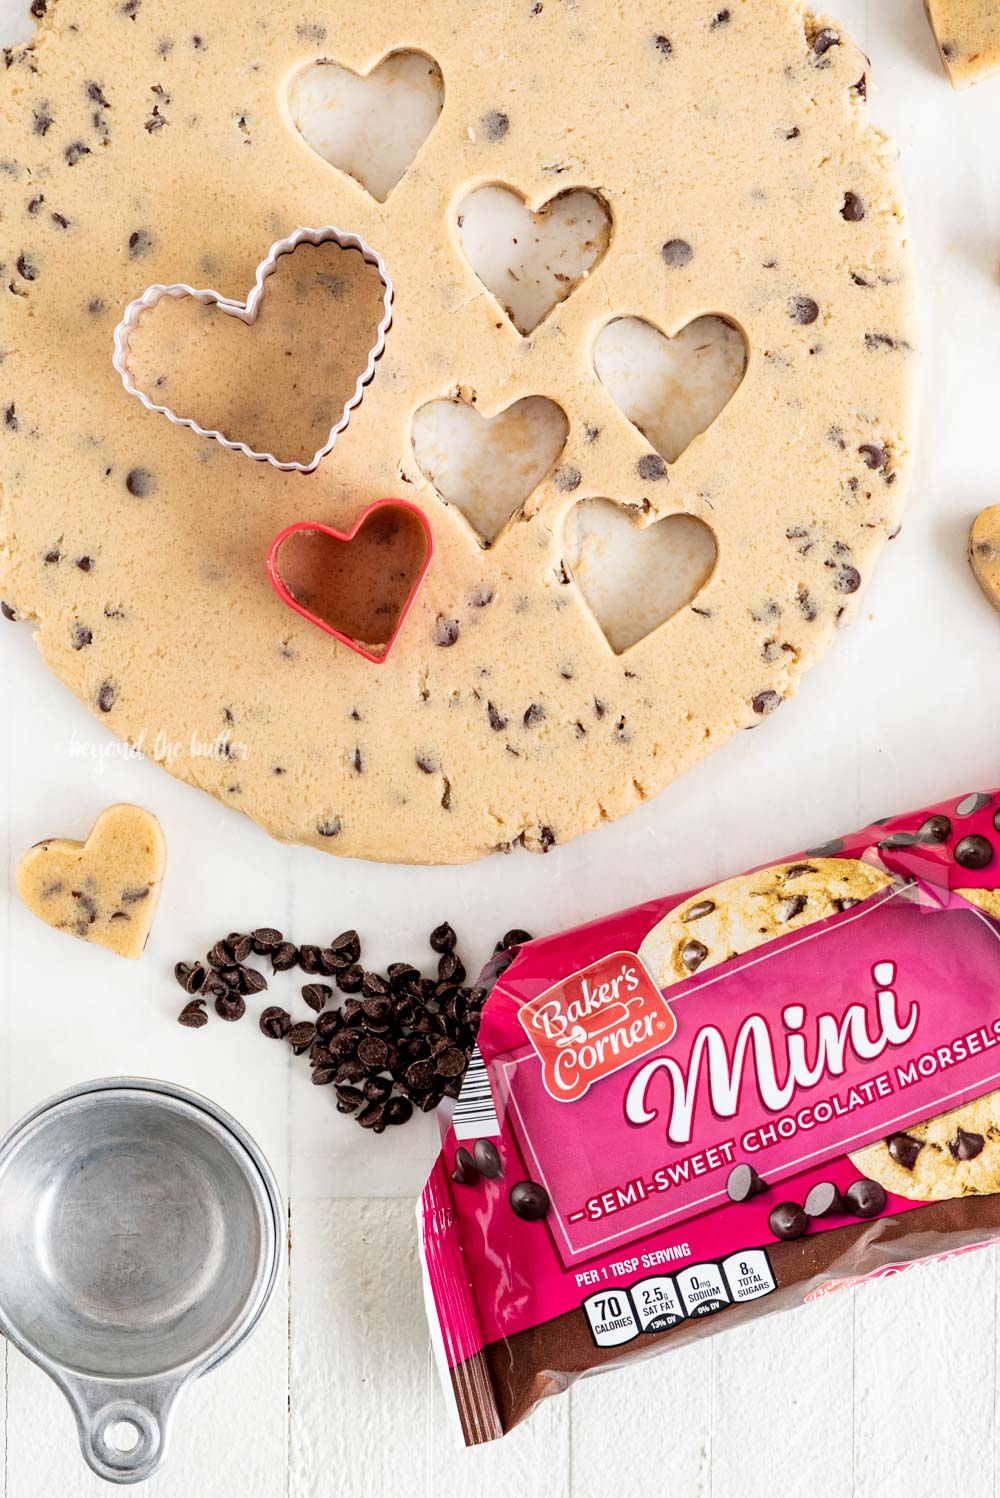 Cutting out cookie dough hearts | All Images © Beyond the Butter, LLC